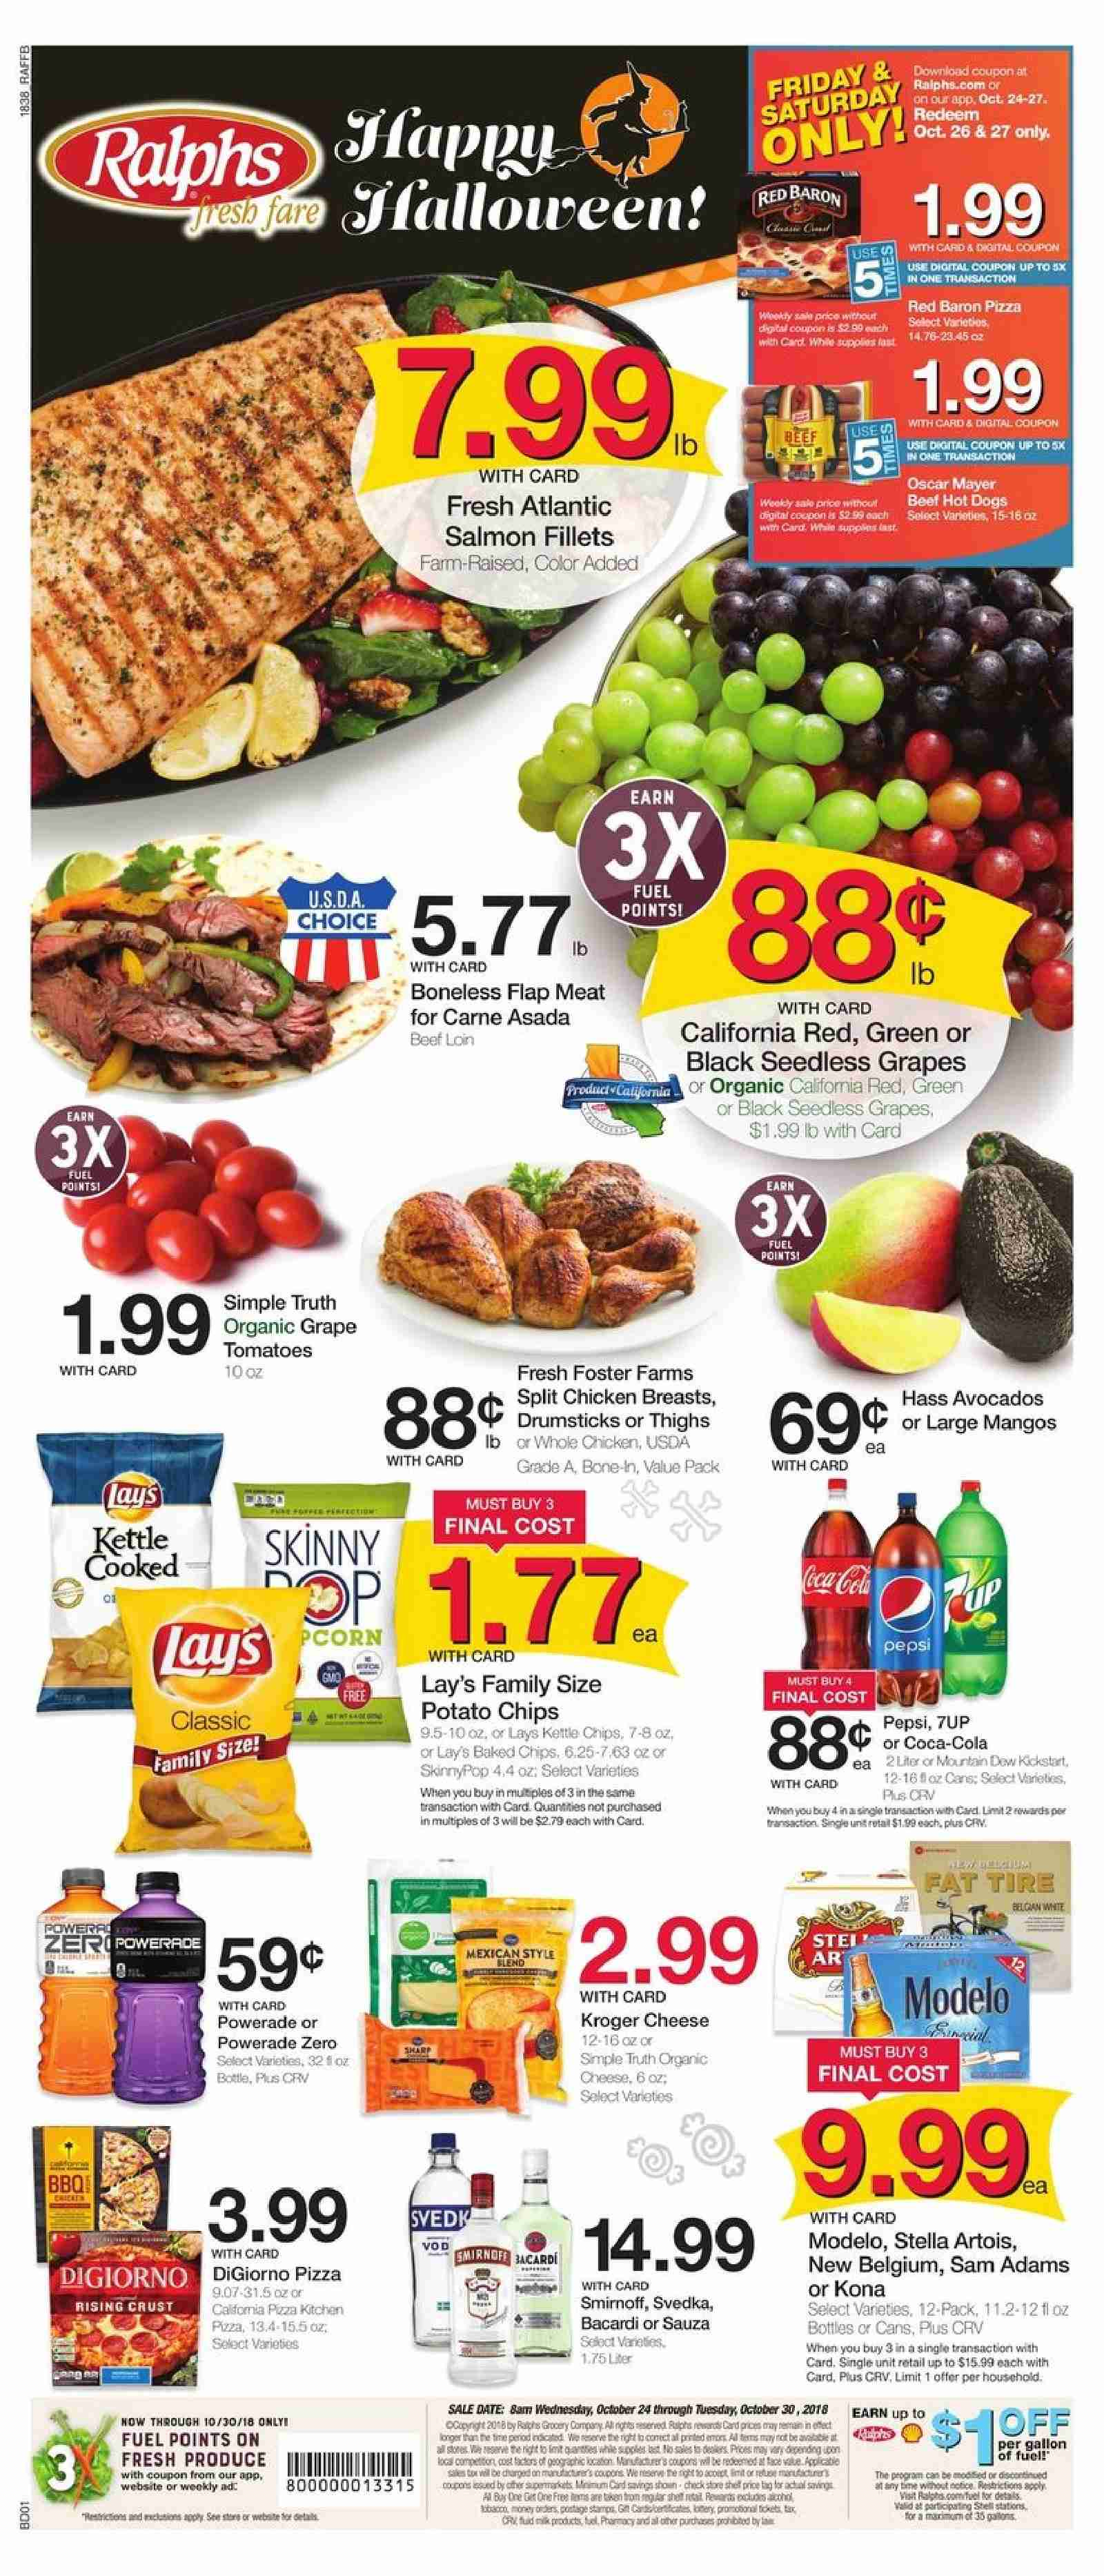 Ralphs Flyer  - 10.24.2018 - 10.30.2018. Page 1.